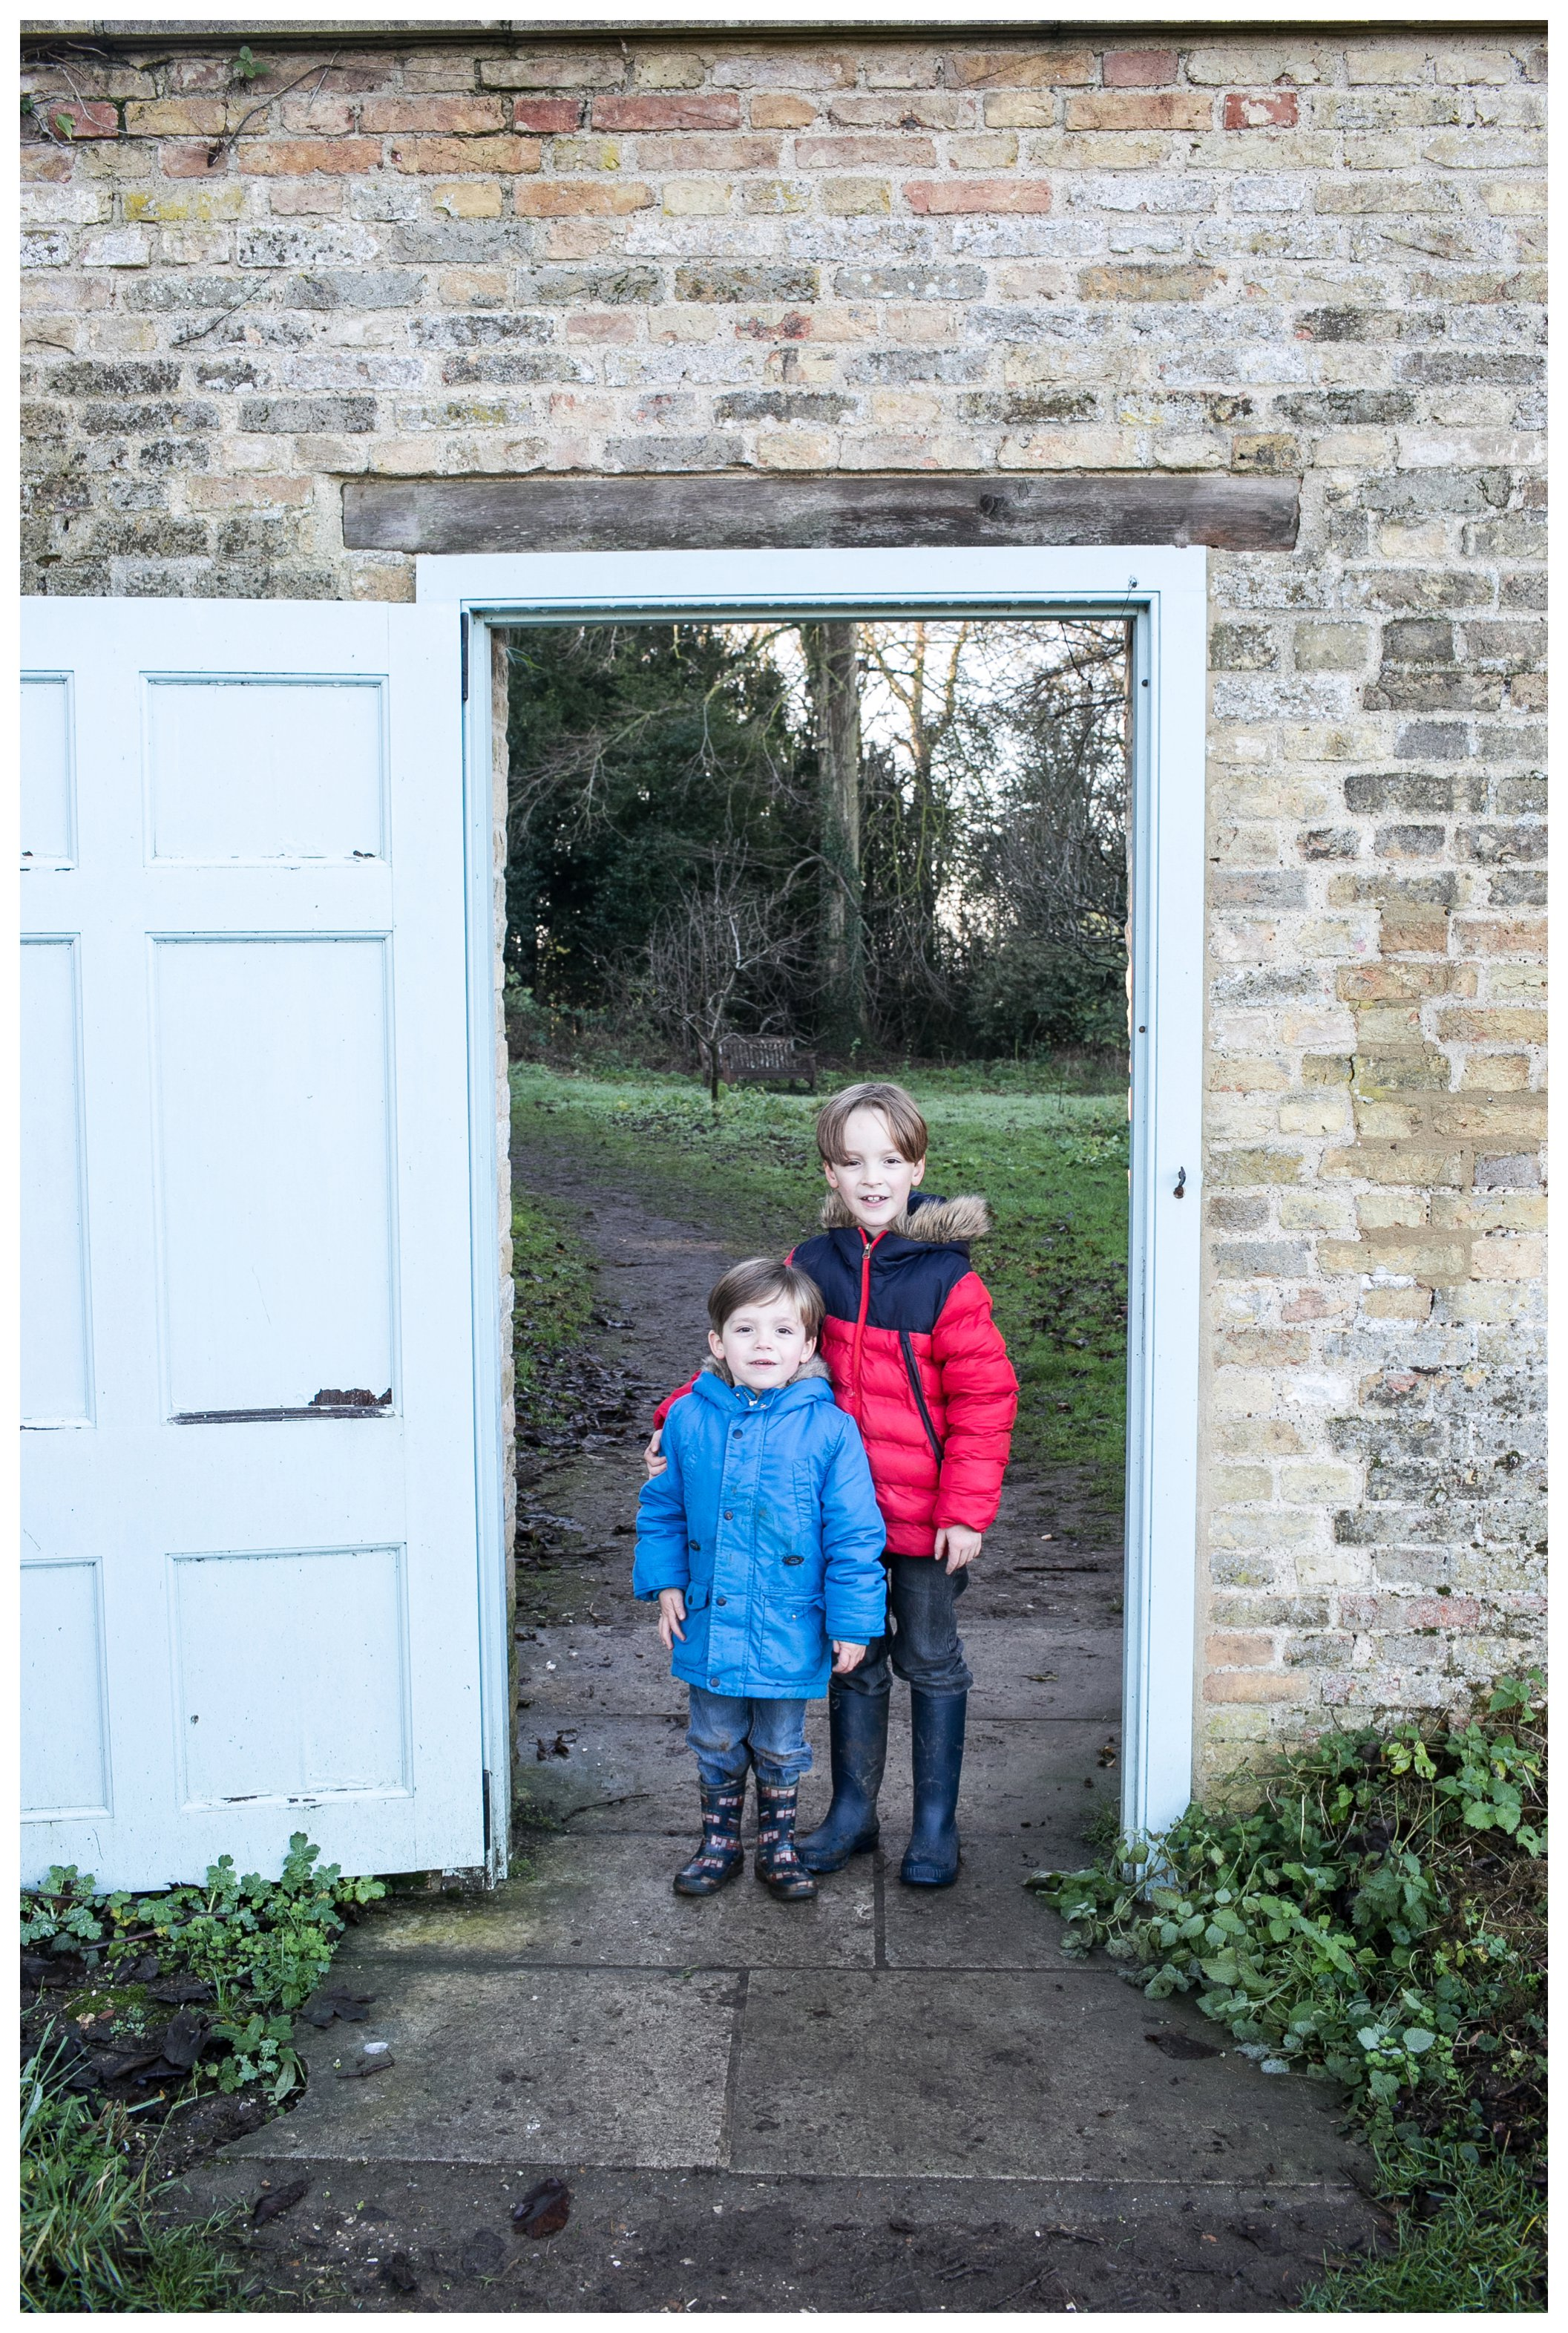 boys in doorway of outdoor wall at wandlebury country park